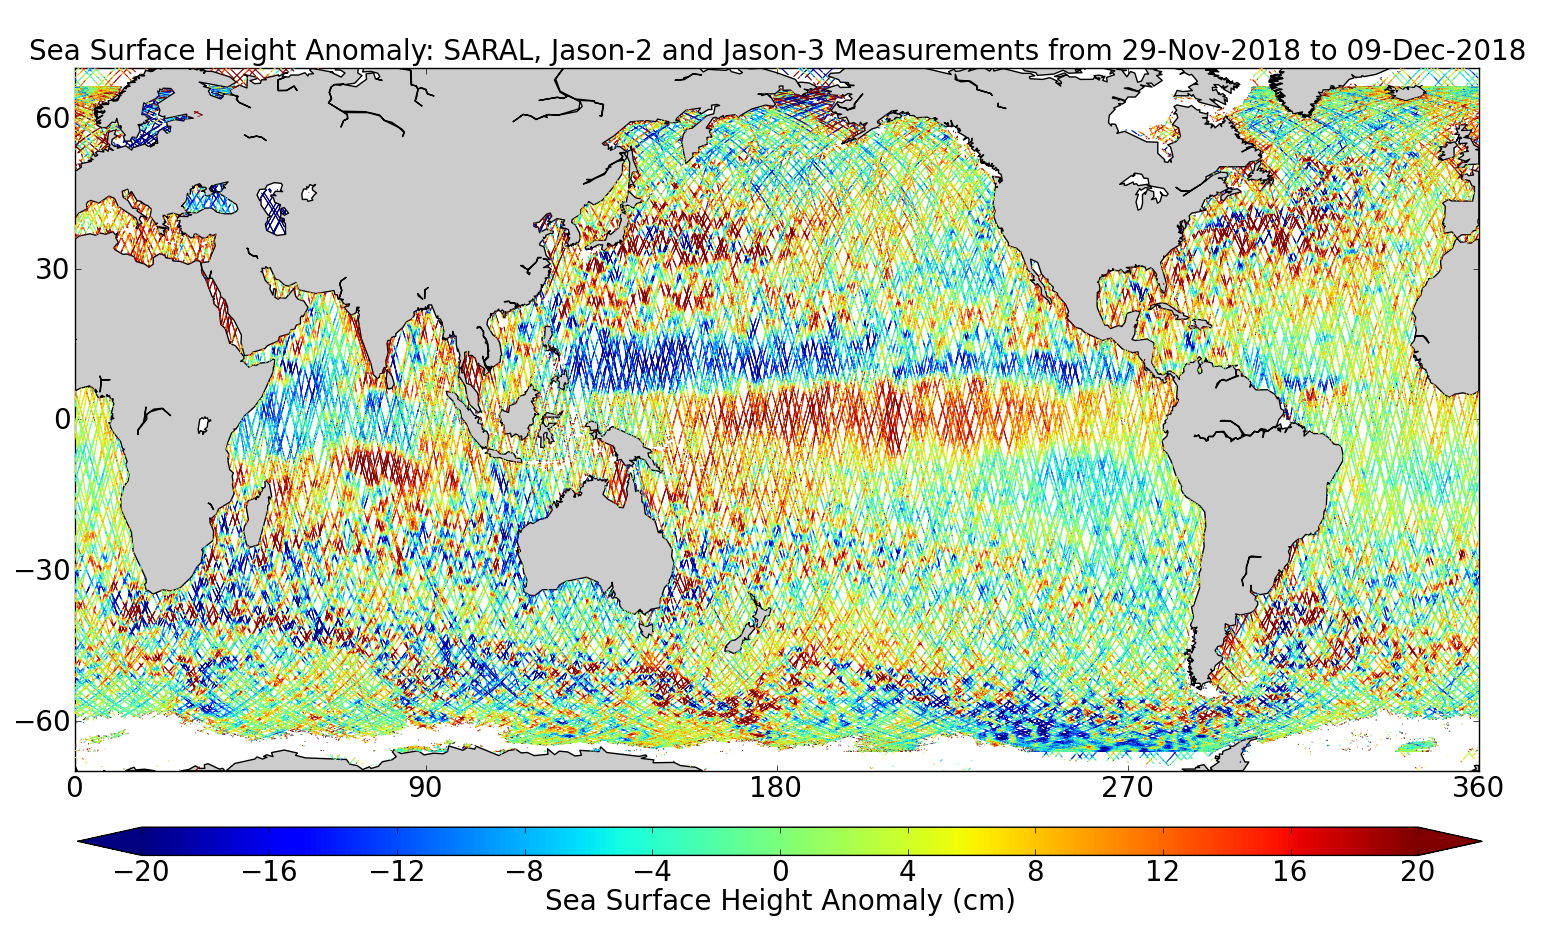 Sea Surface Height Anomaly: SARAL, Jason-2 and Jason-3 Measurements from 29-Nov-2018 to 09-Dec-2018